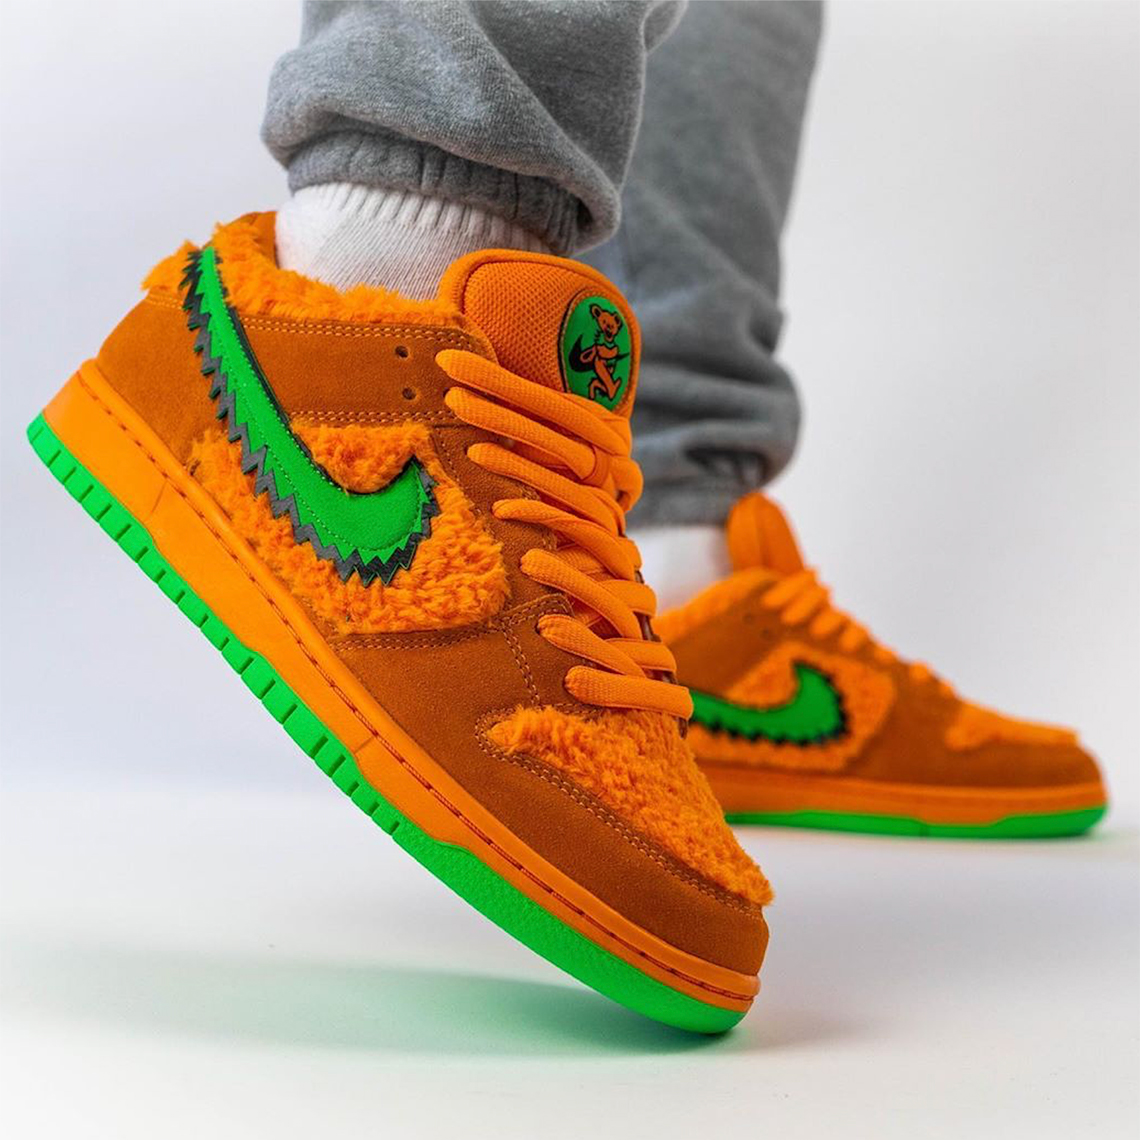 Grateful Dead Nike SB Dunk Bear Orange Green CJ5378-800 ...